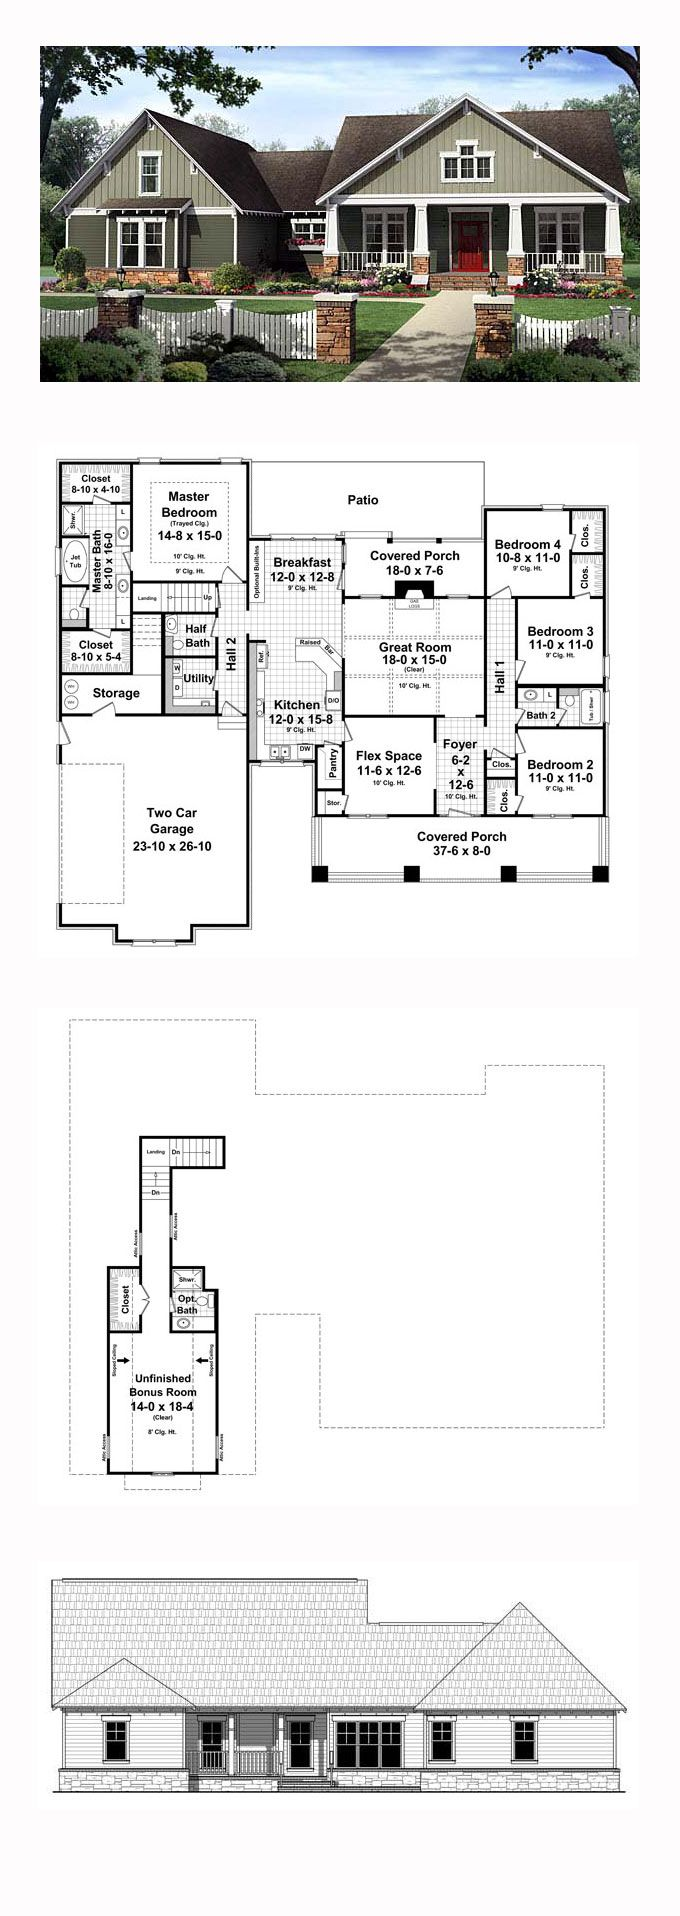 5 bedroom 3 bathroom house plans - Bungalow Craftsman House Plan 59207